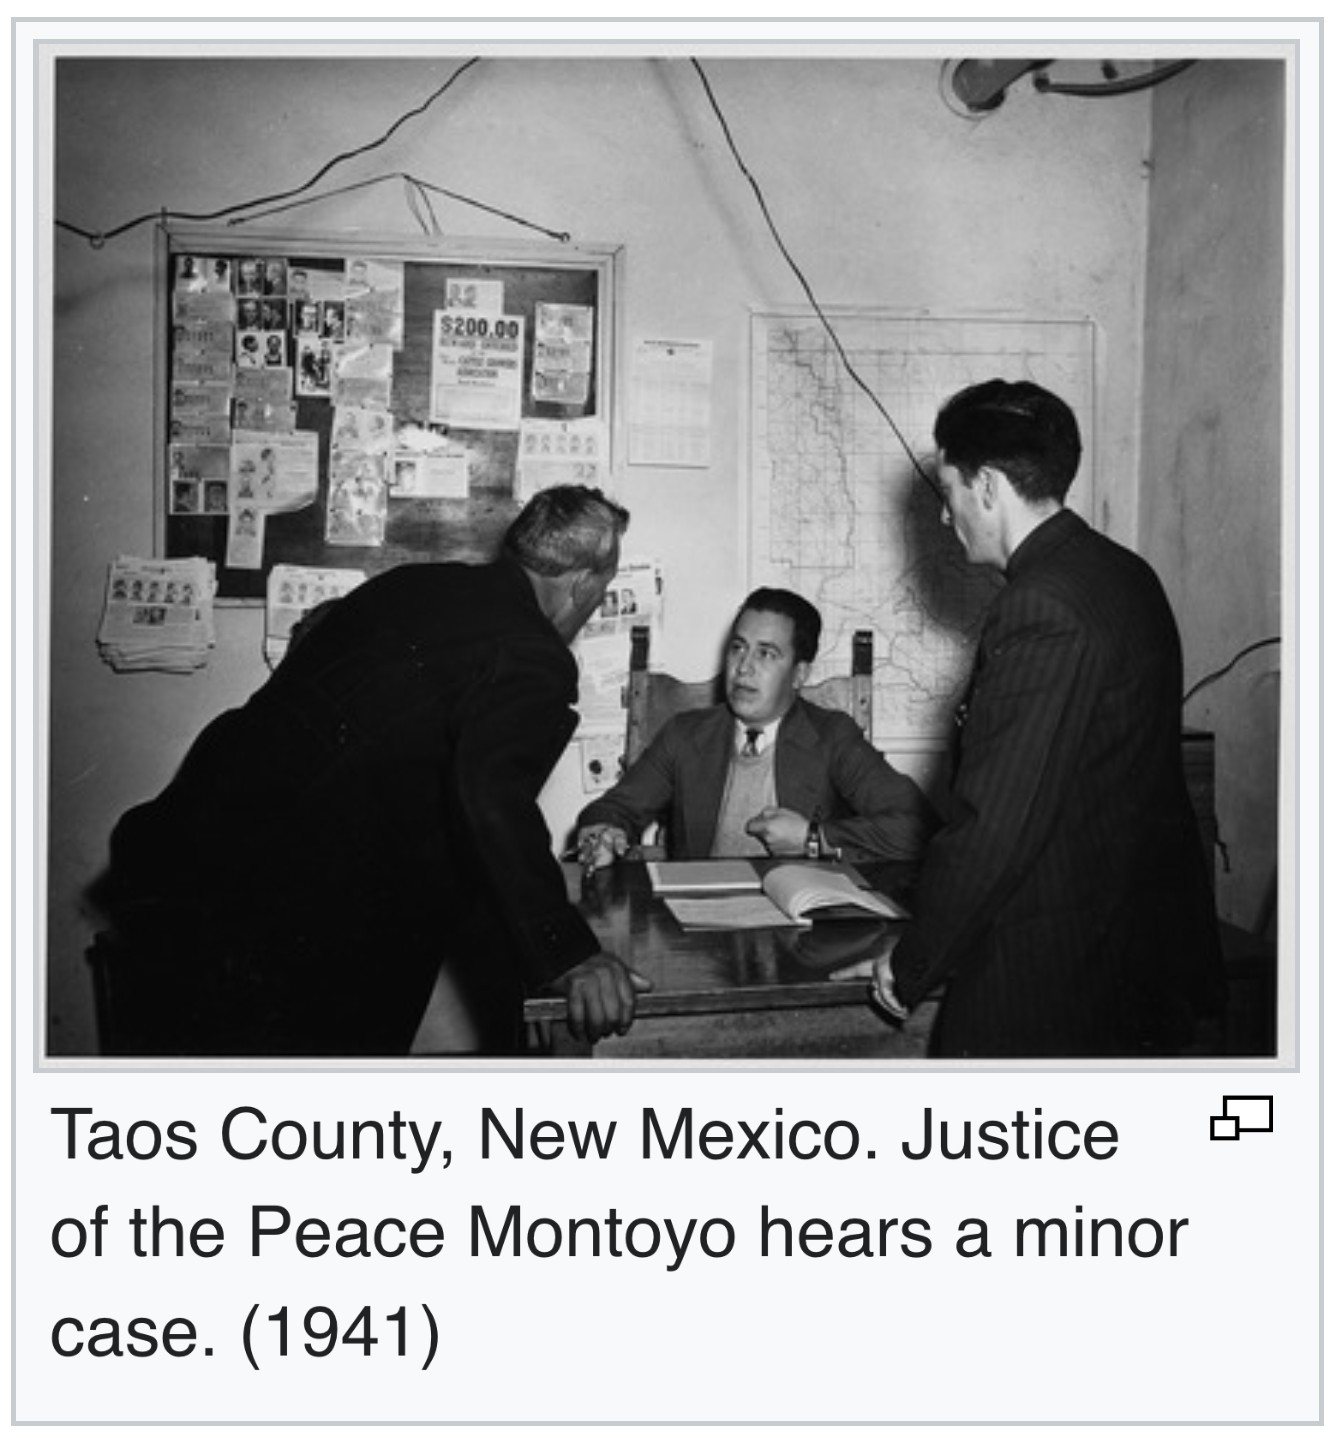 Justice of the Peace Montoyo